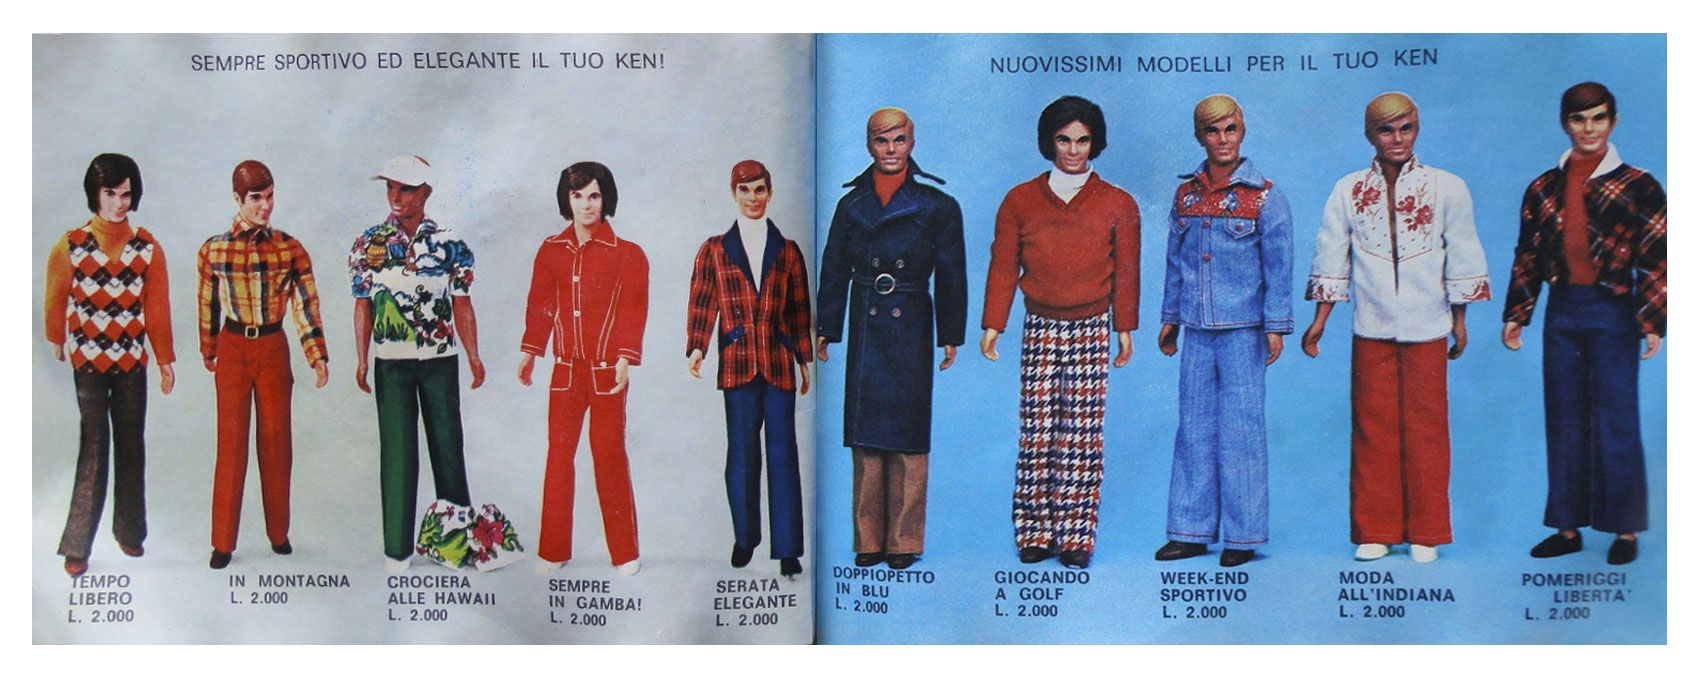 From 1975 Italian Barbie booklet